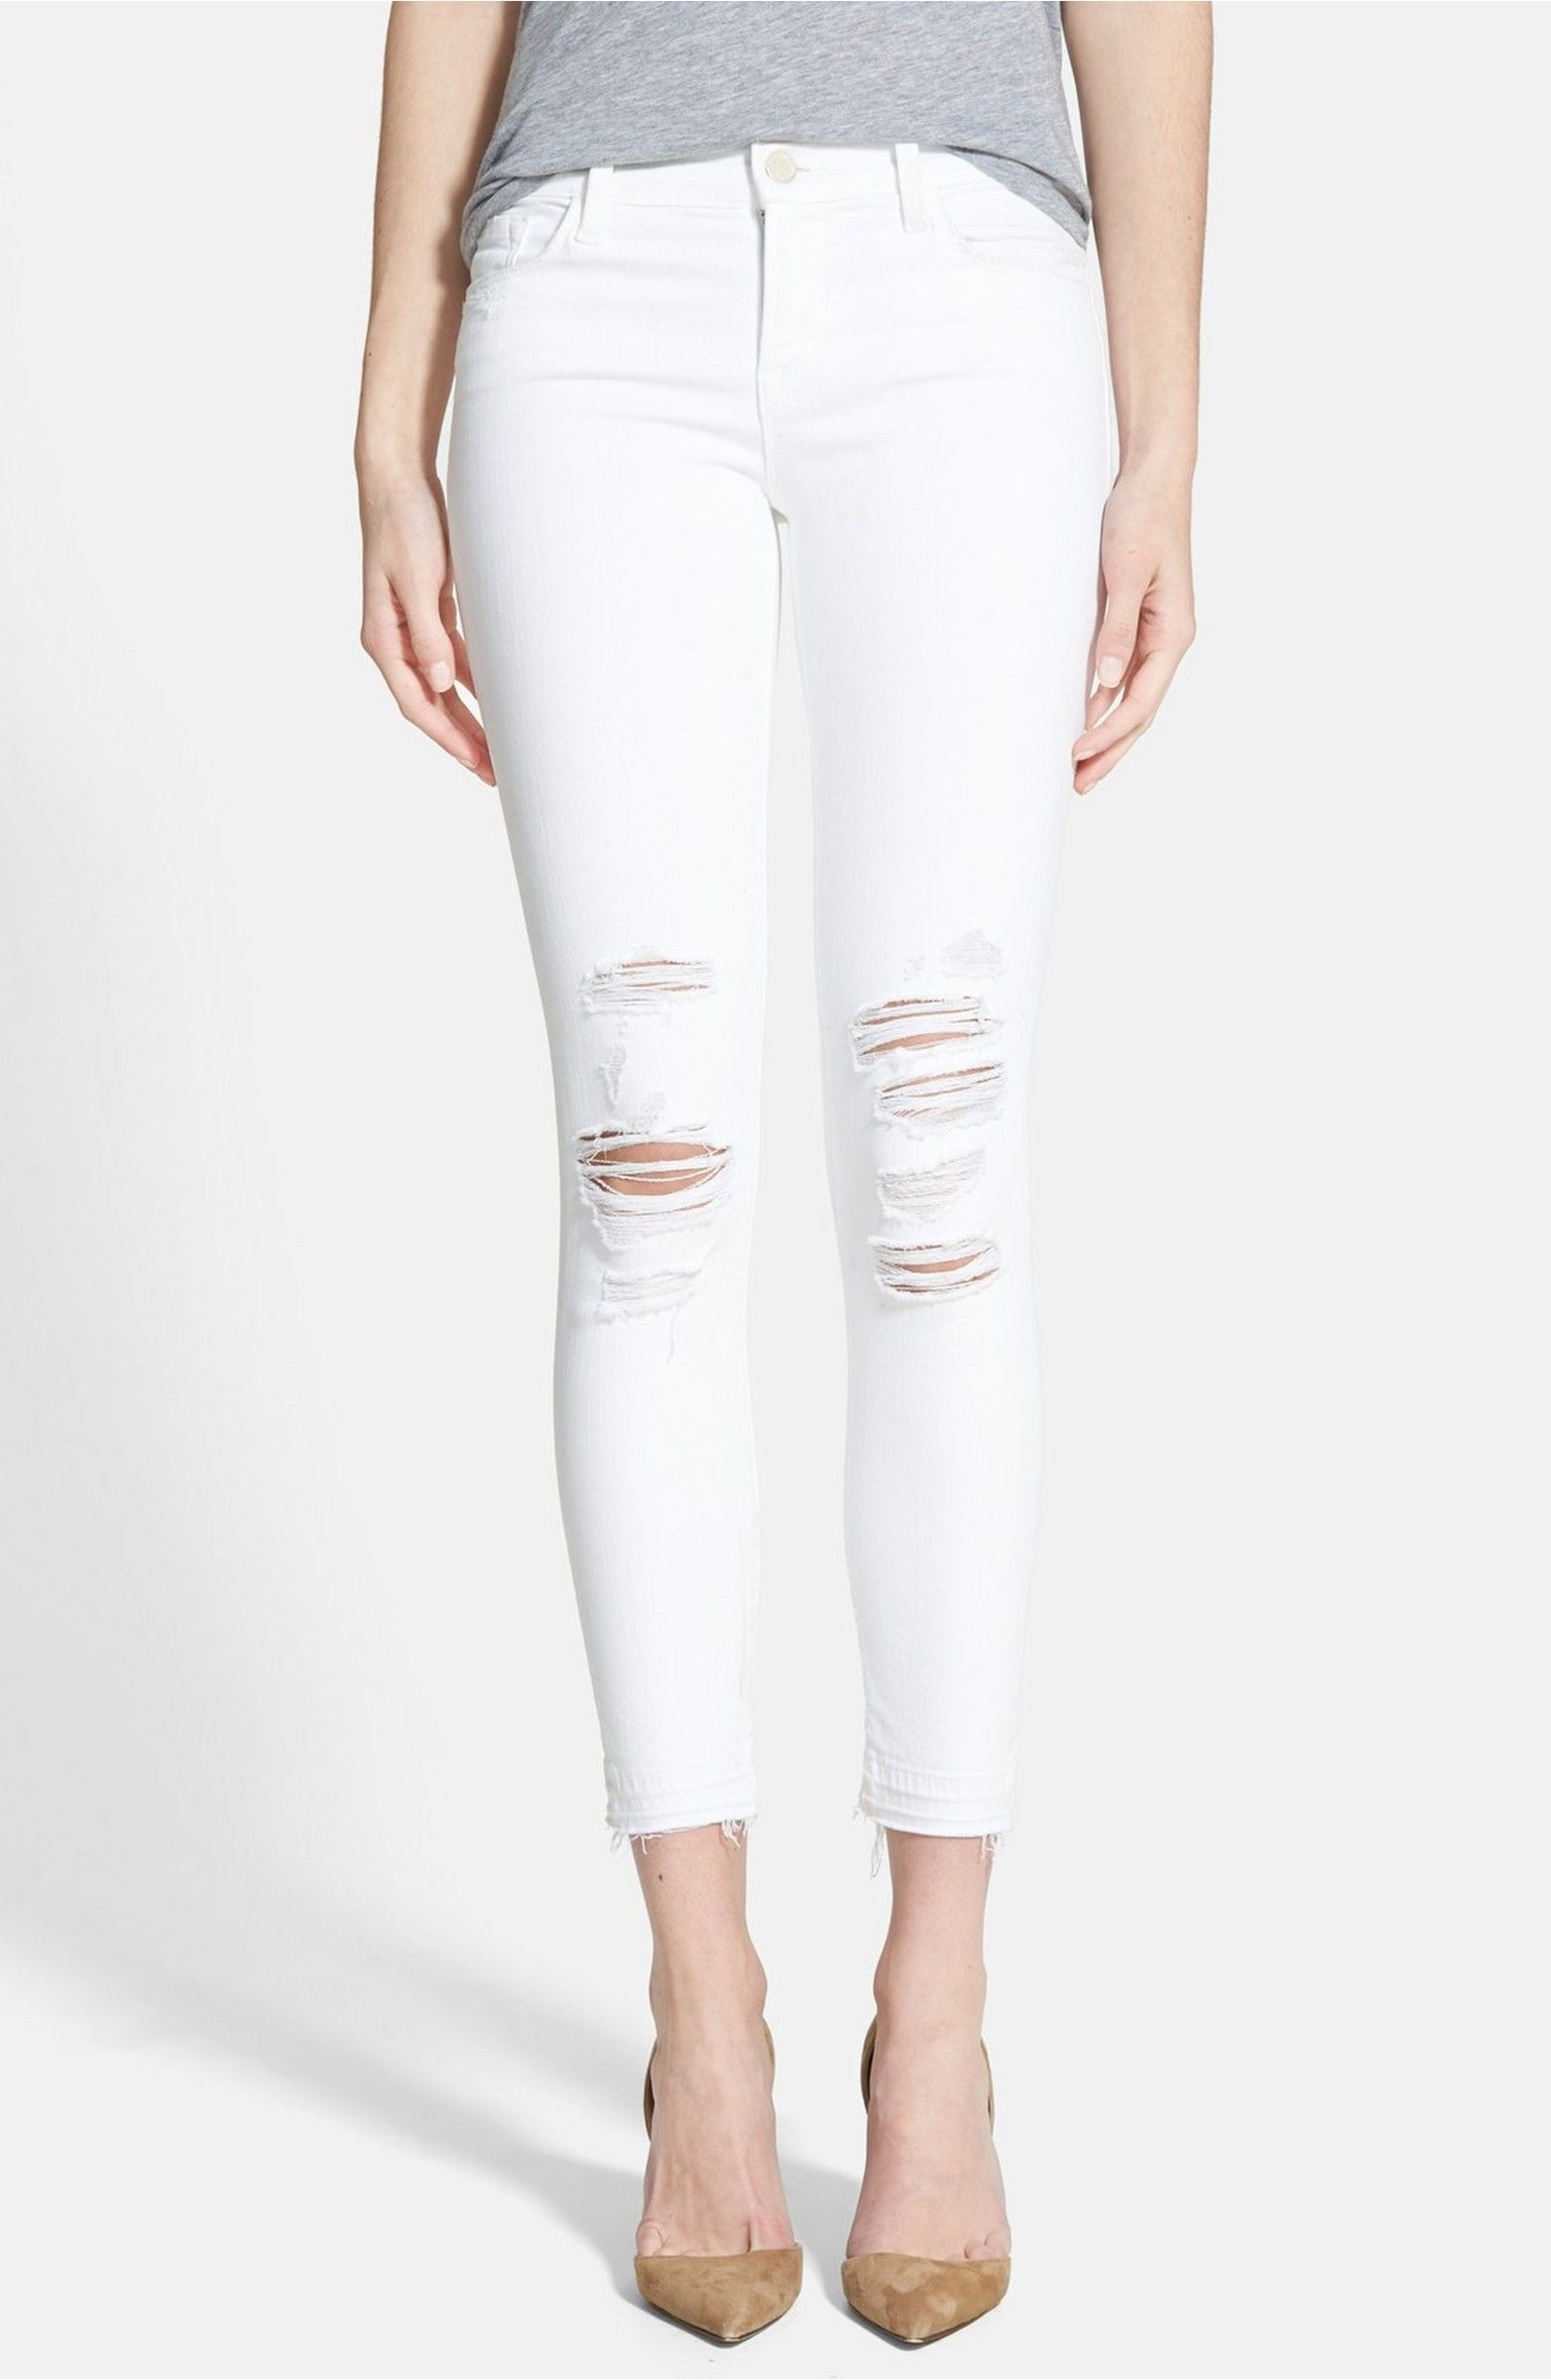 9326 Low Rise Crop Skinny Jeans. Jeans On SaleWhite Distressed ...